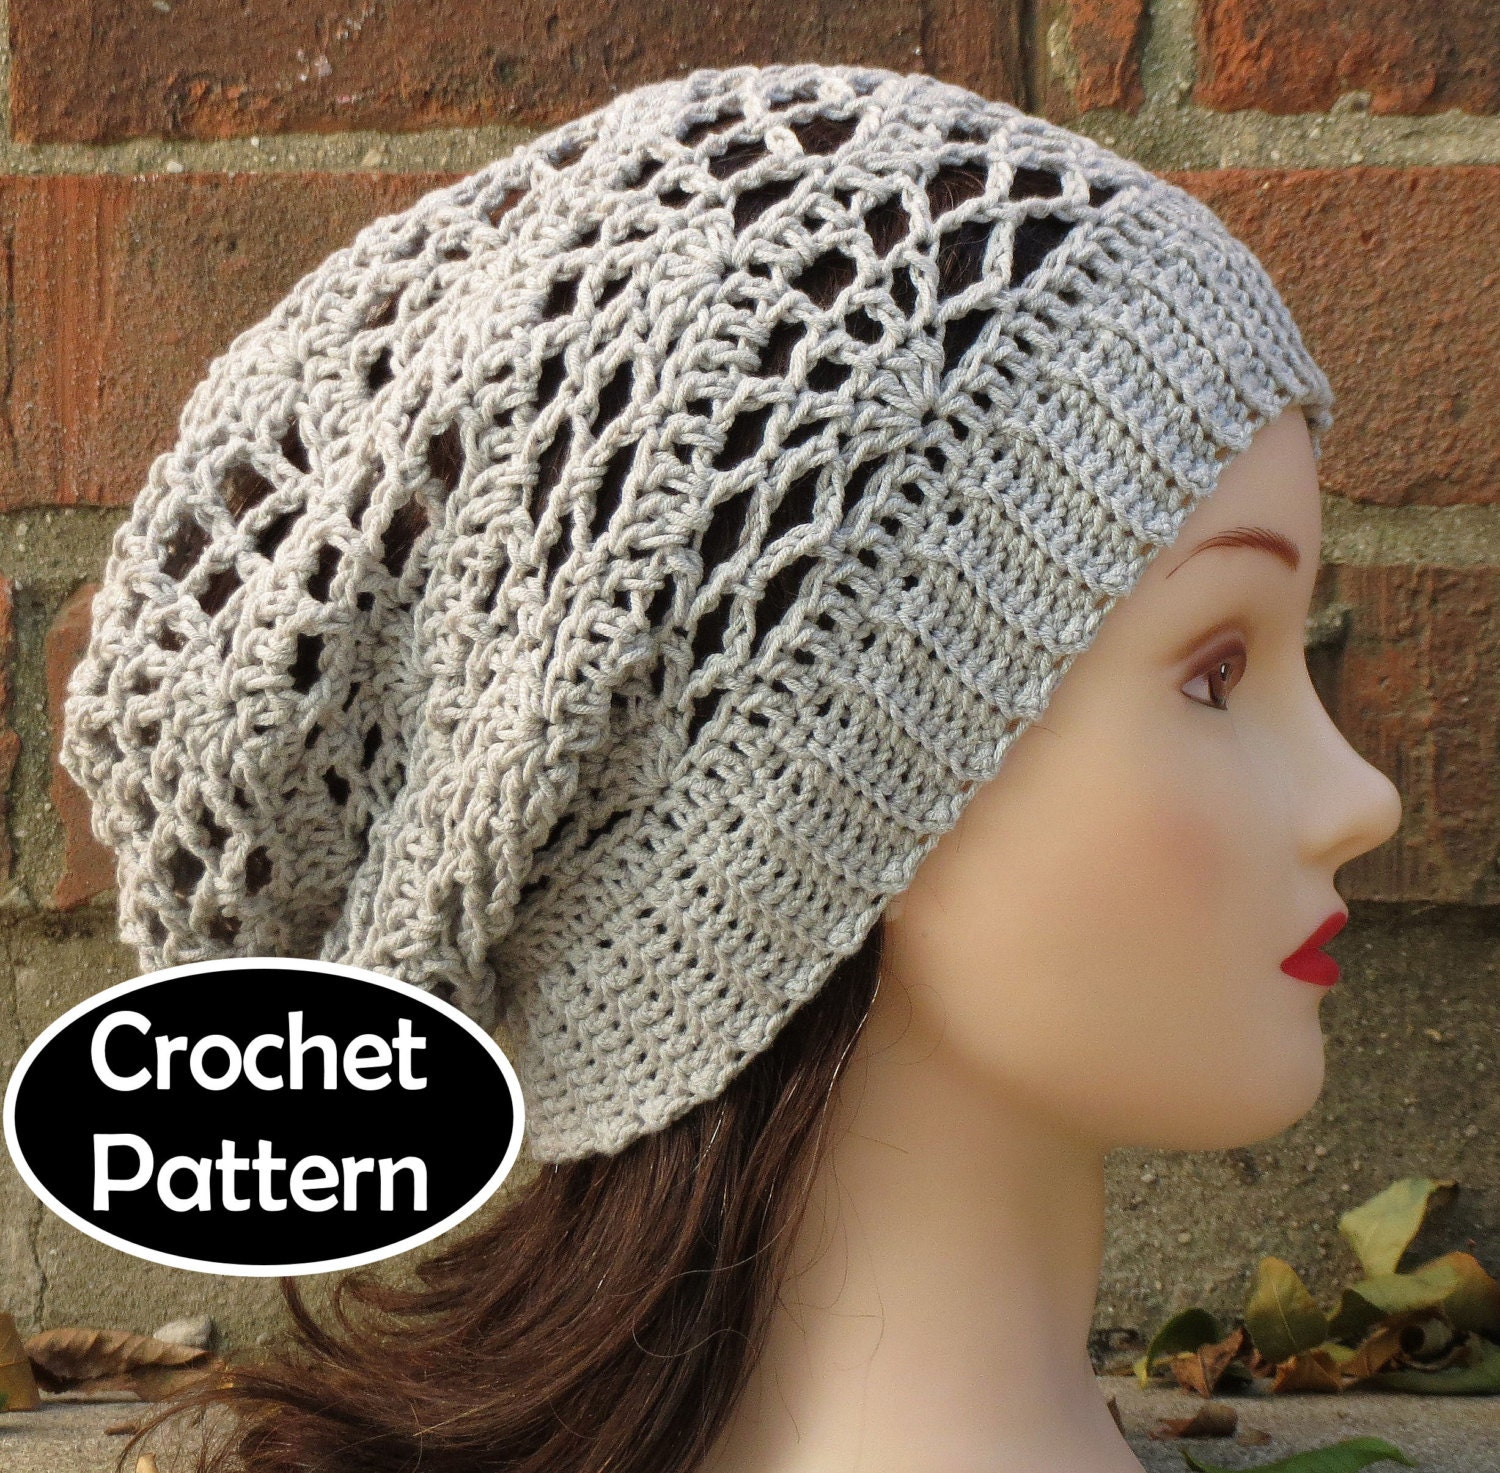 Crochet Hat Pattern Download : CROCHET HAT PATTERN Instant Download Arachne Slouchy Beanie